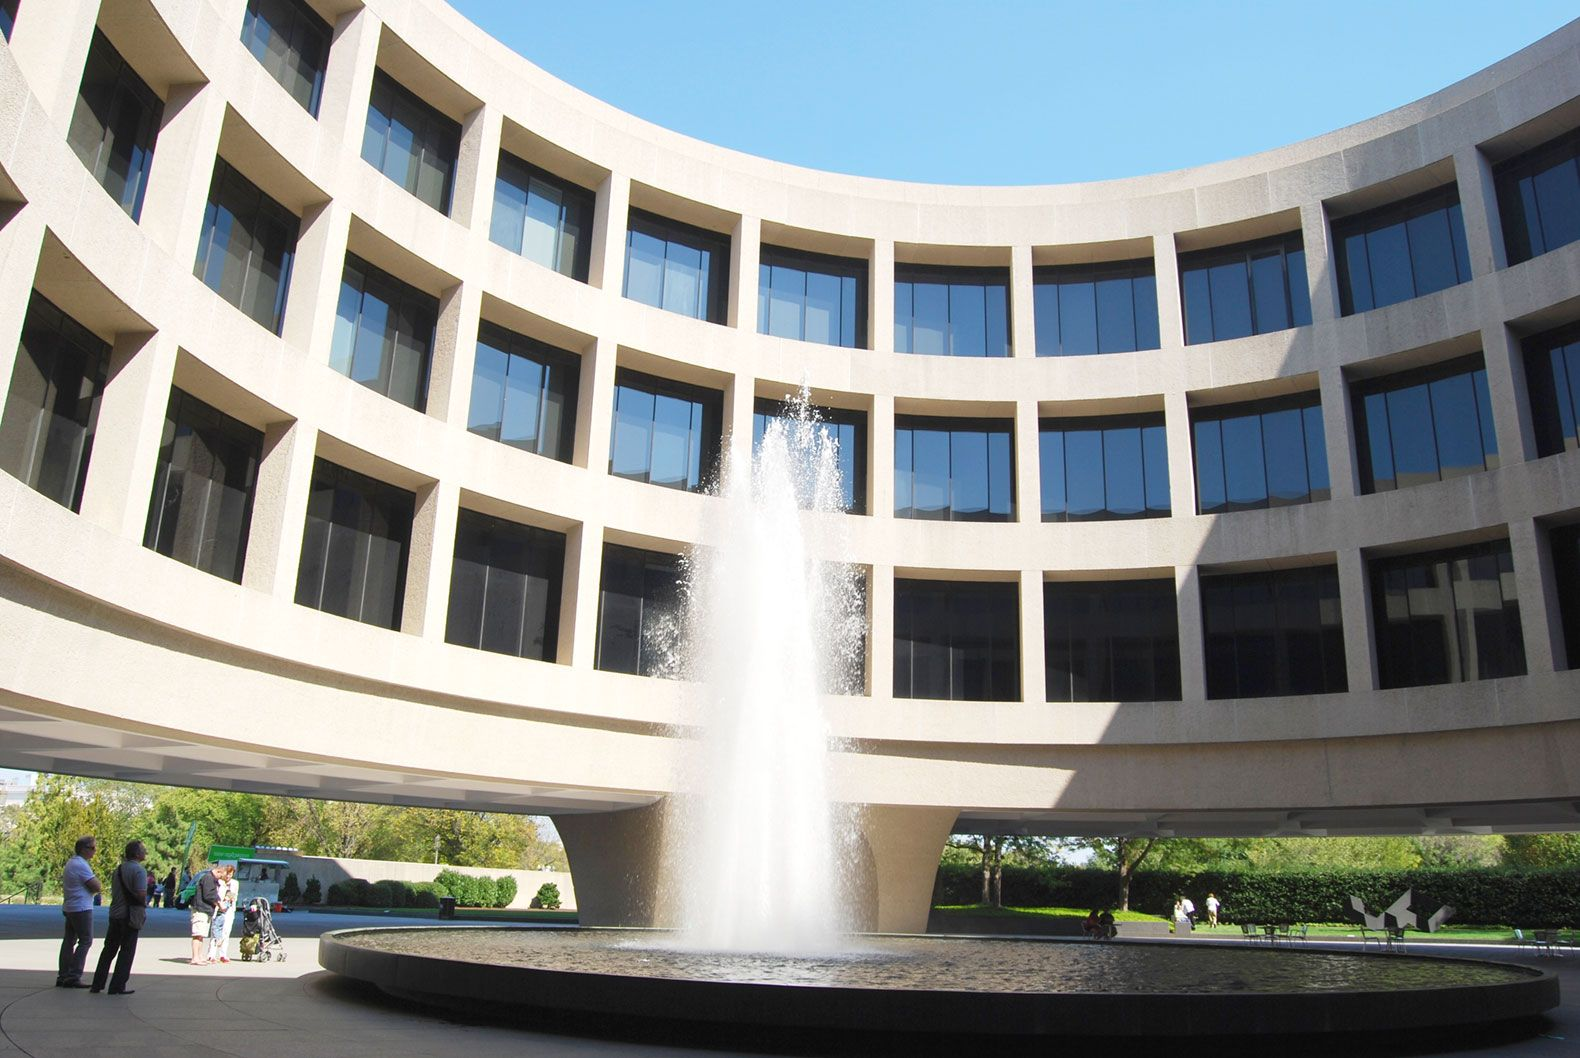 In Washington, DC, students can use their math skills to discuss architectural elements like the curves at the Hirshhorn Museum.